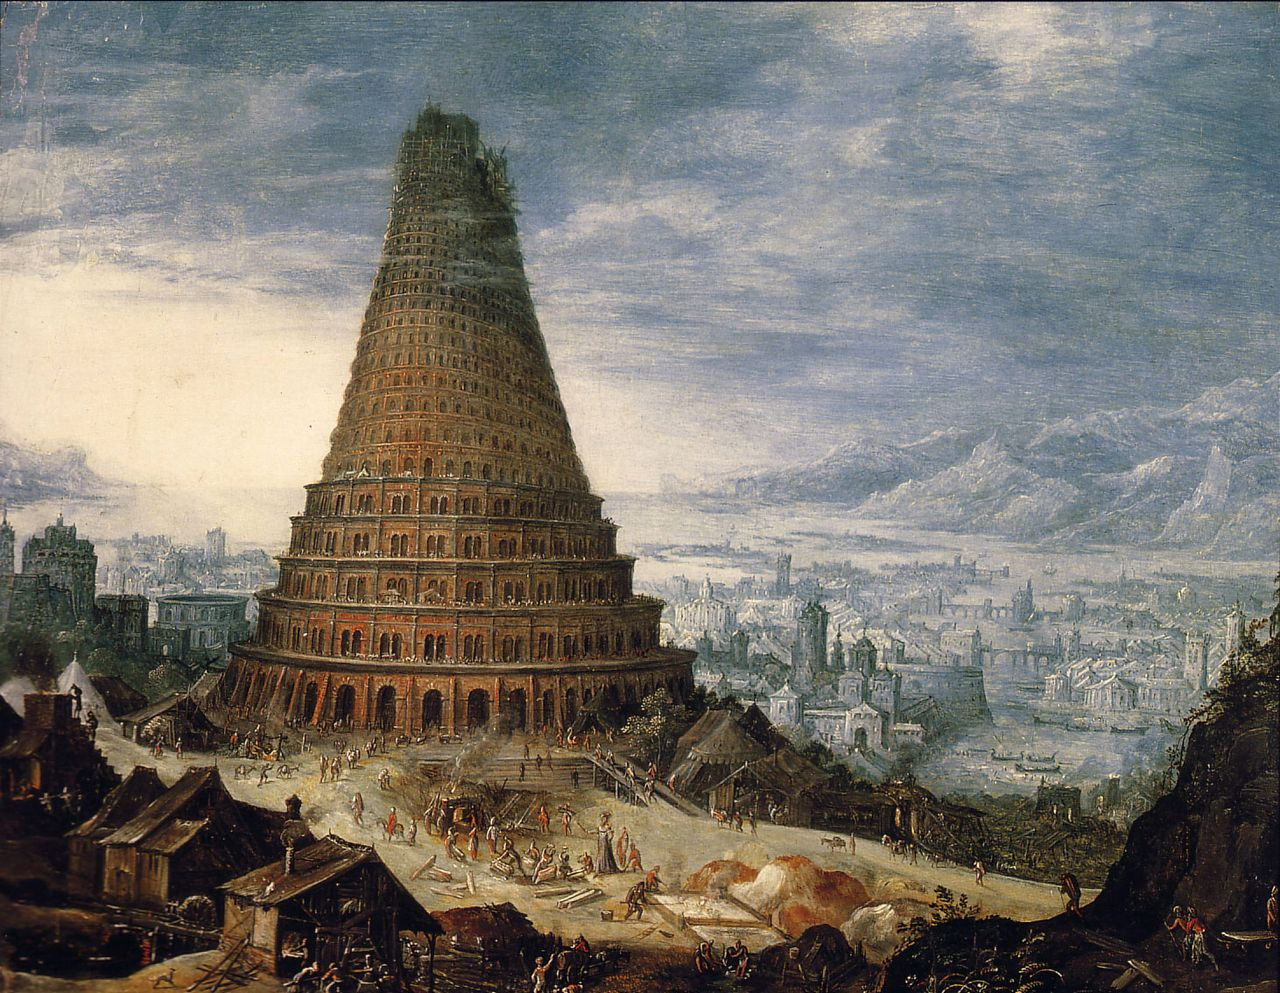 the tower of babel The story of the tower of babel is explained in genesis 11 in just a few verses this is a summary about biblical account of the tower of babel you can read more in-depth bible verses from the scripture below and use the articles and videos to understand the meaning behind this teachable event in.